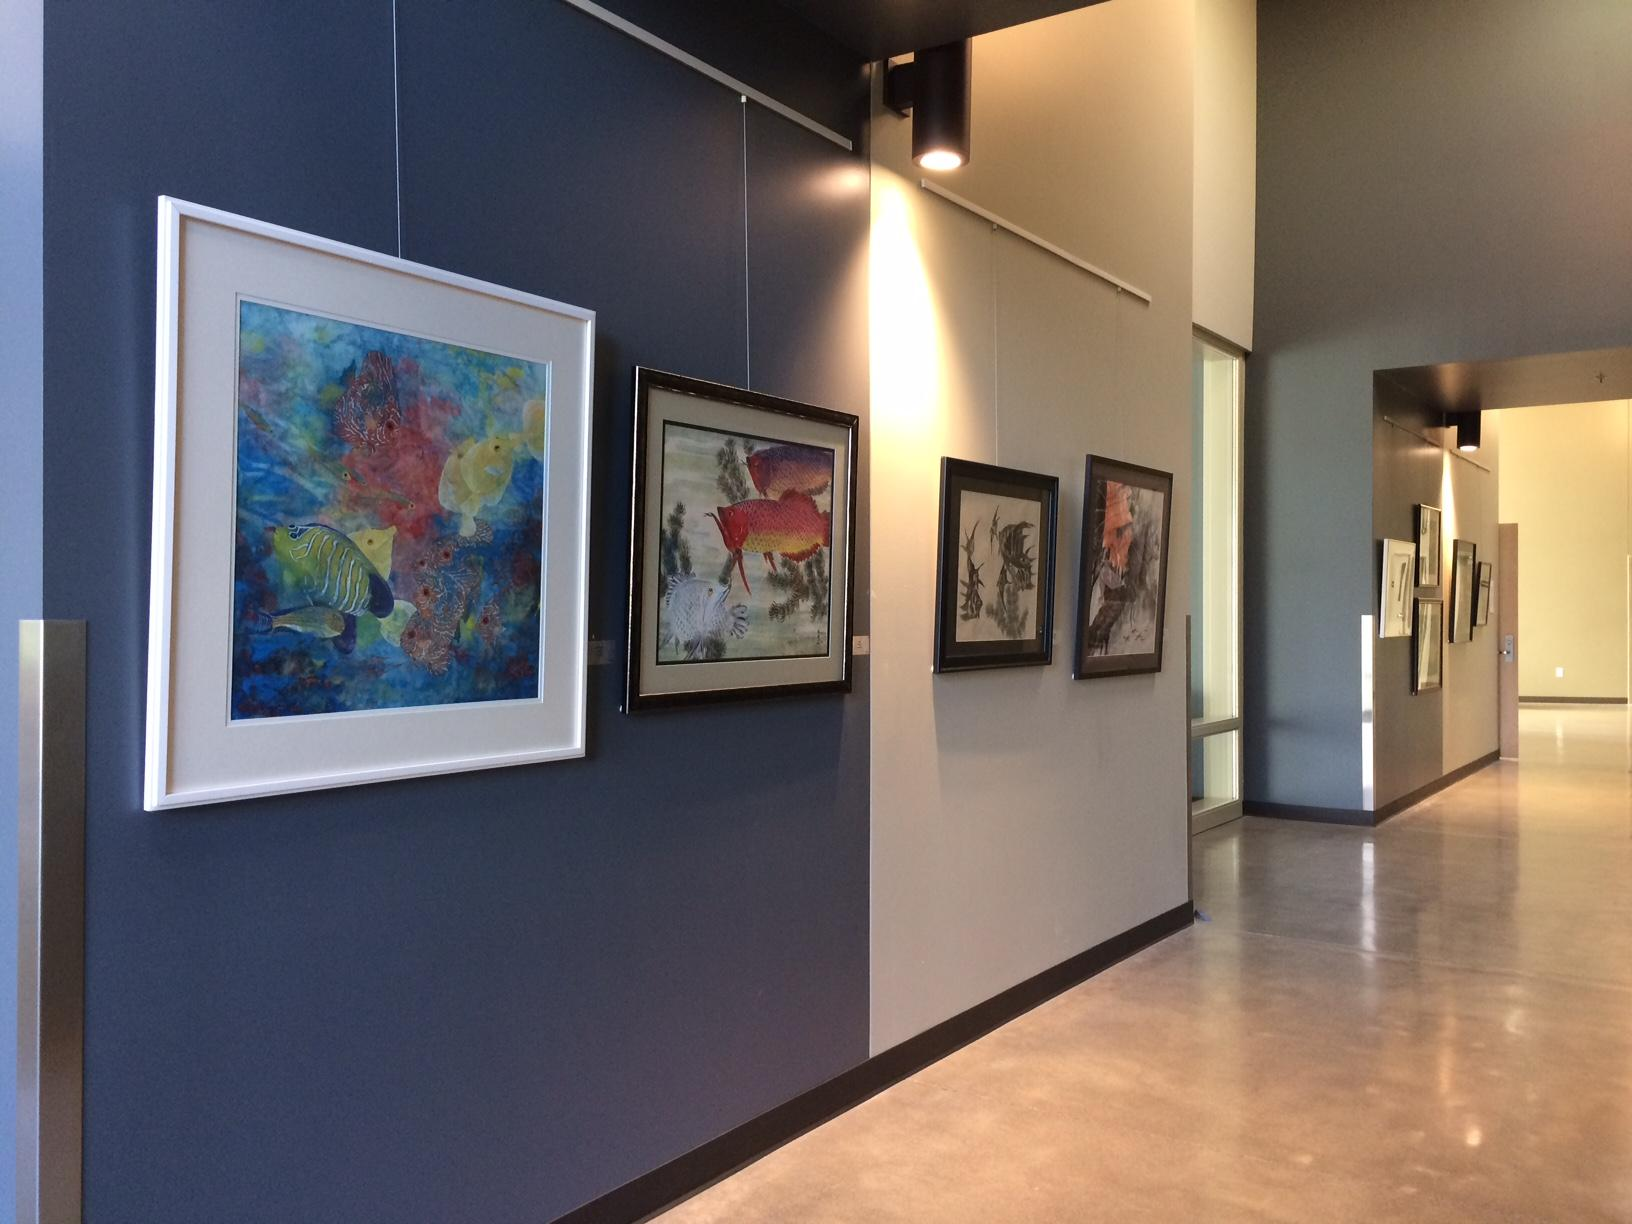 Community Center Gallery with works by Amy Sie